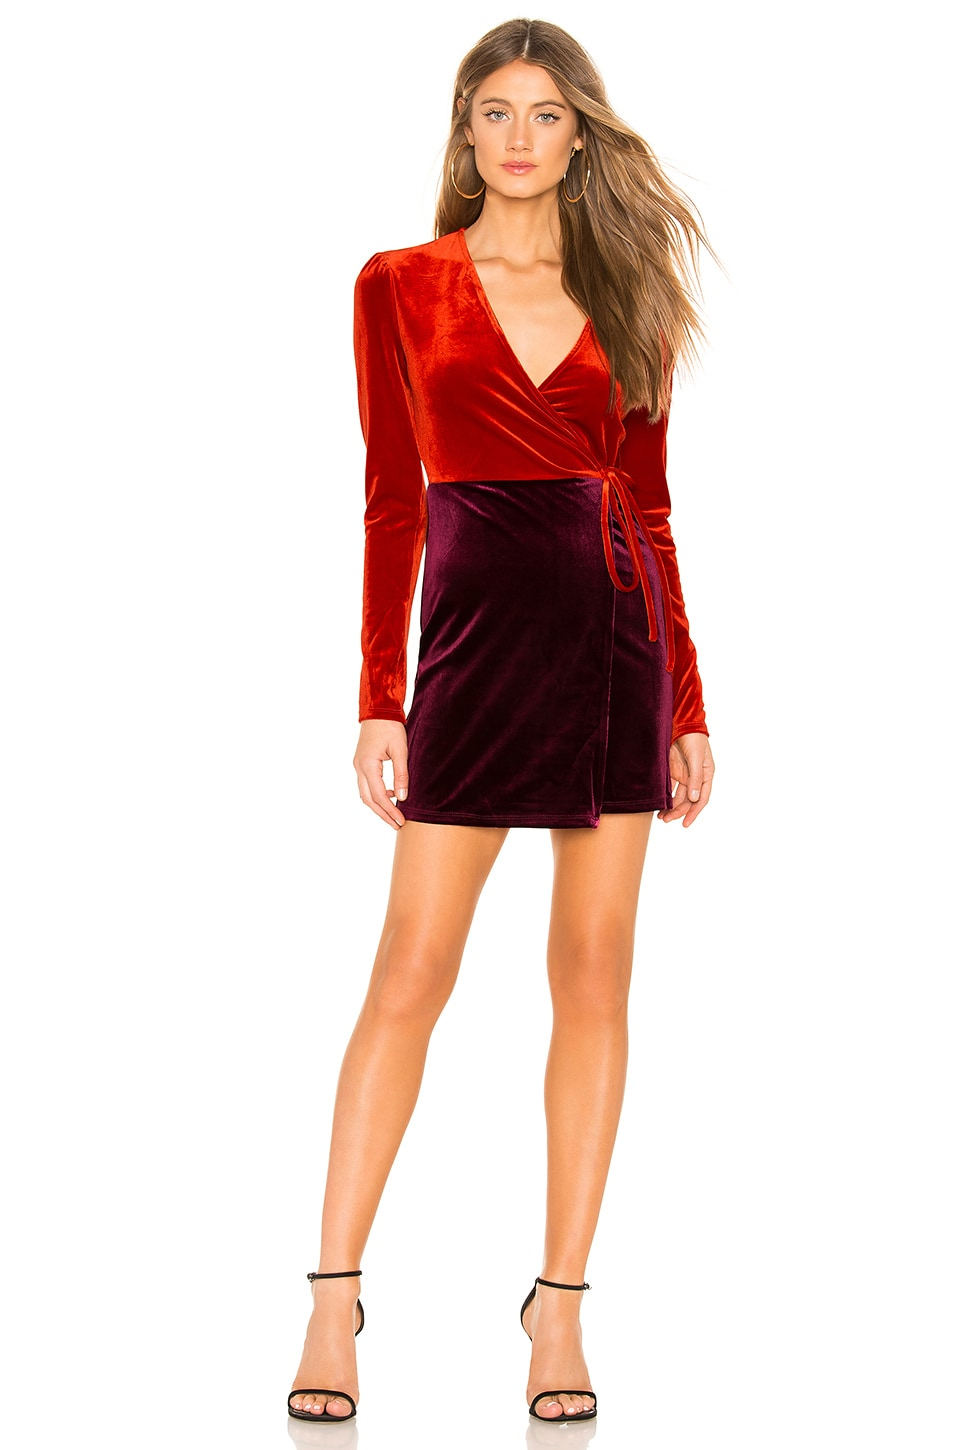 Privacy Please Sadie Mini Dress in Red & Purple